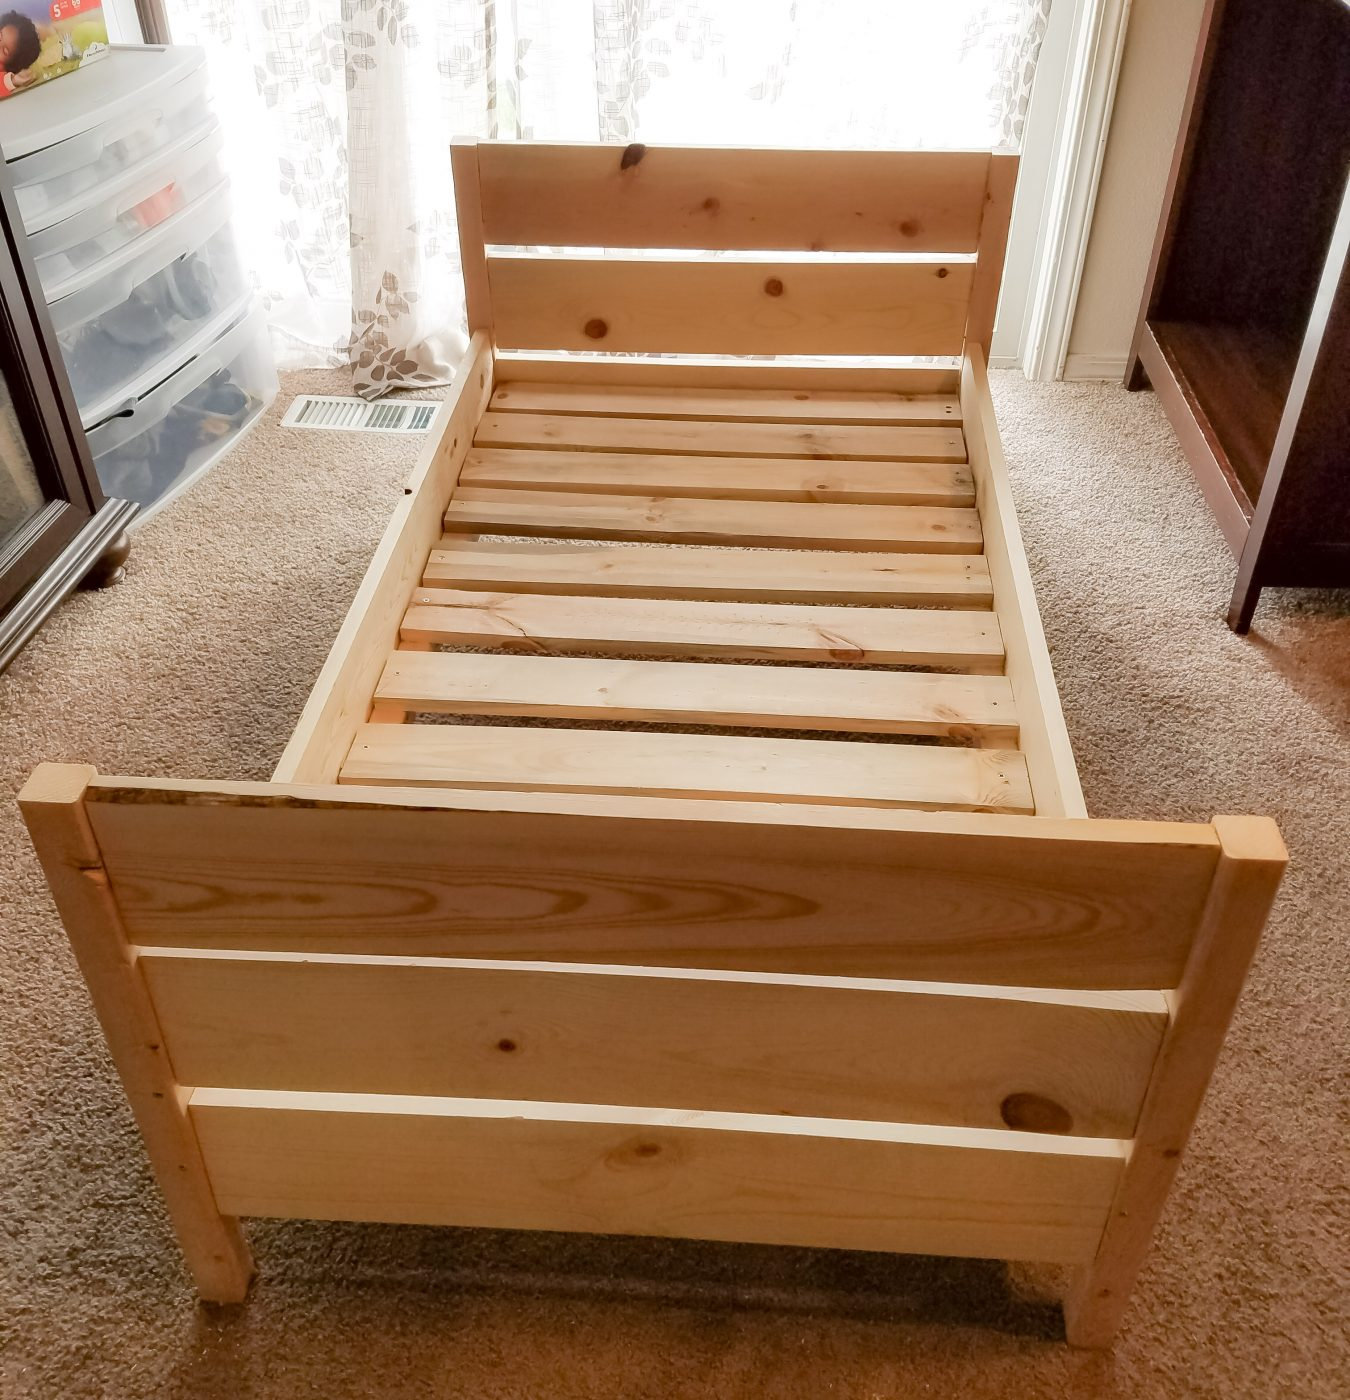 Lovely Diy Toddler Bed Part - 6: DIY Toddler Bed Is A Simple Weekend Project. We Even Did Ours In Our Living